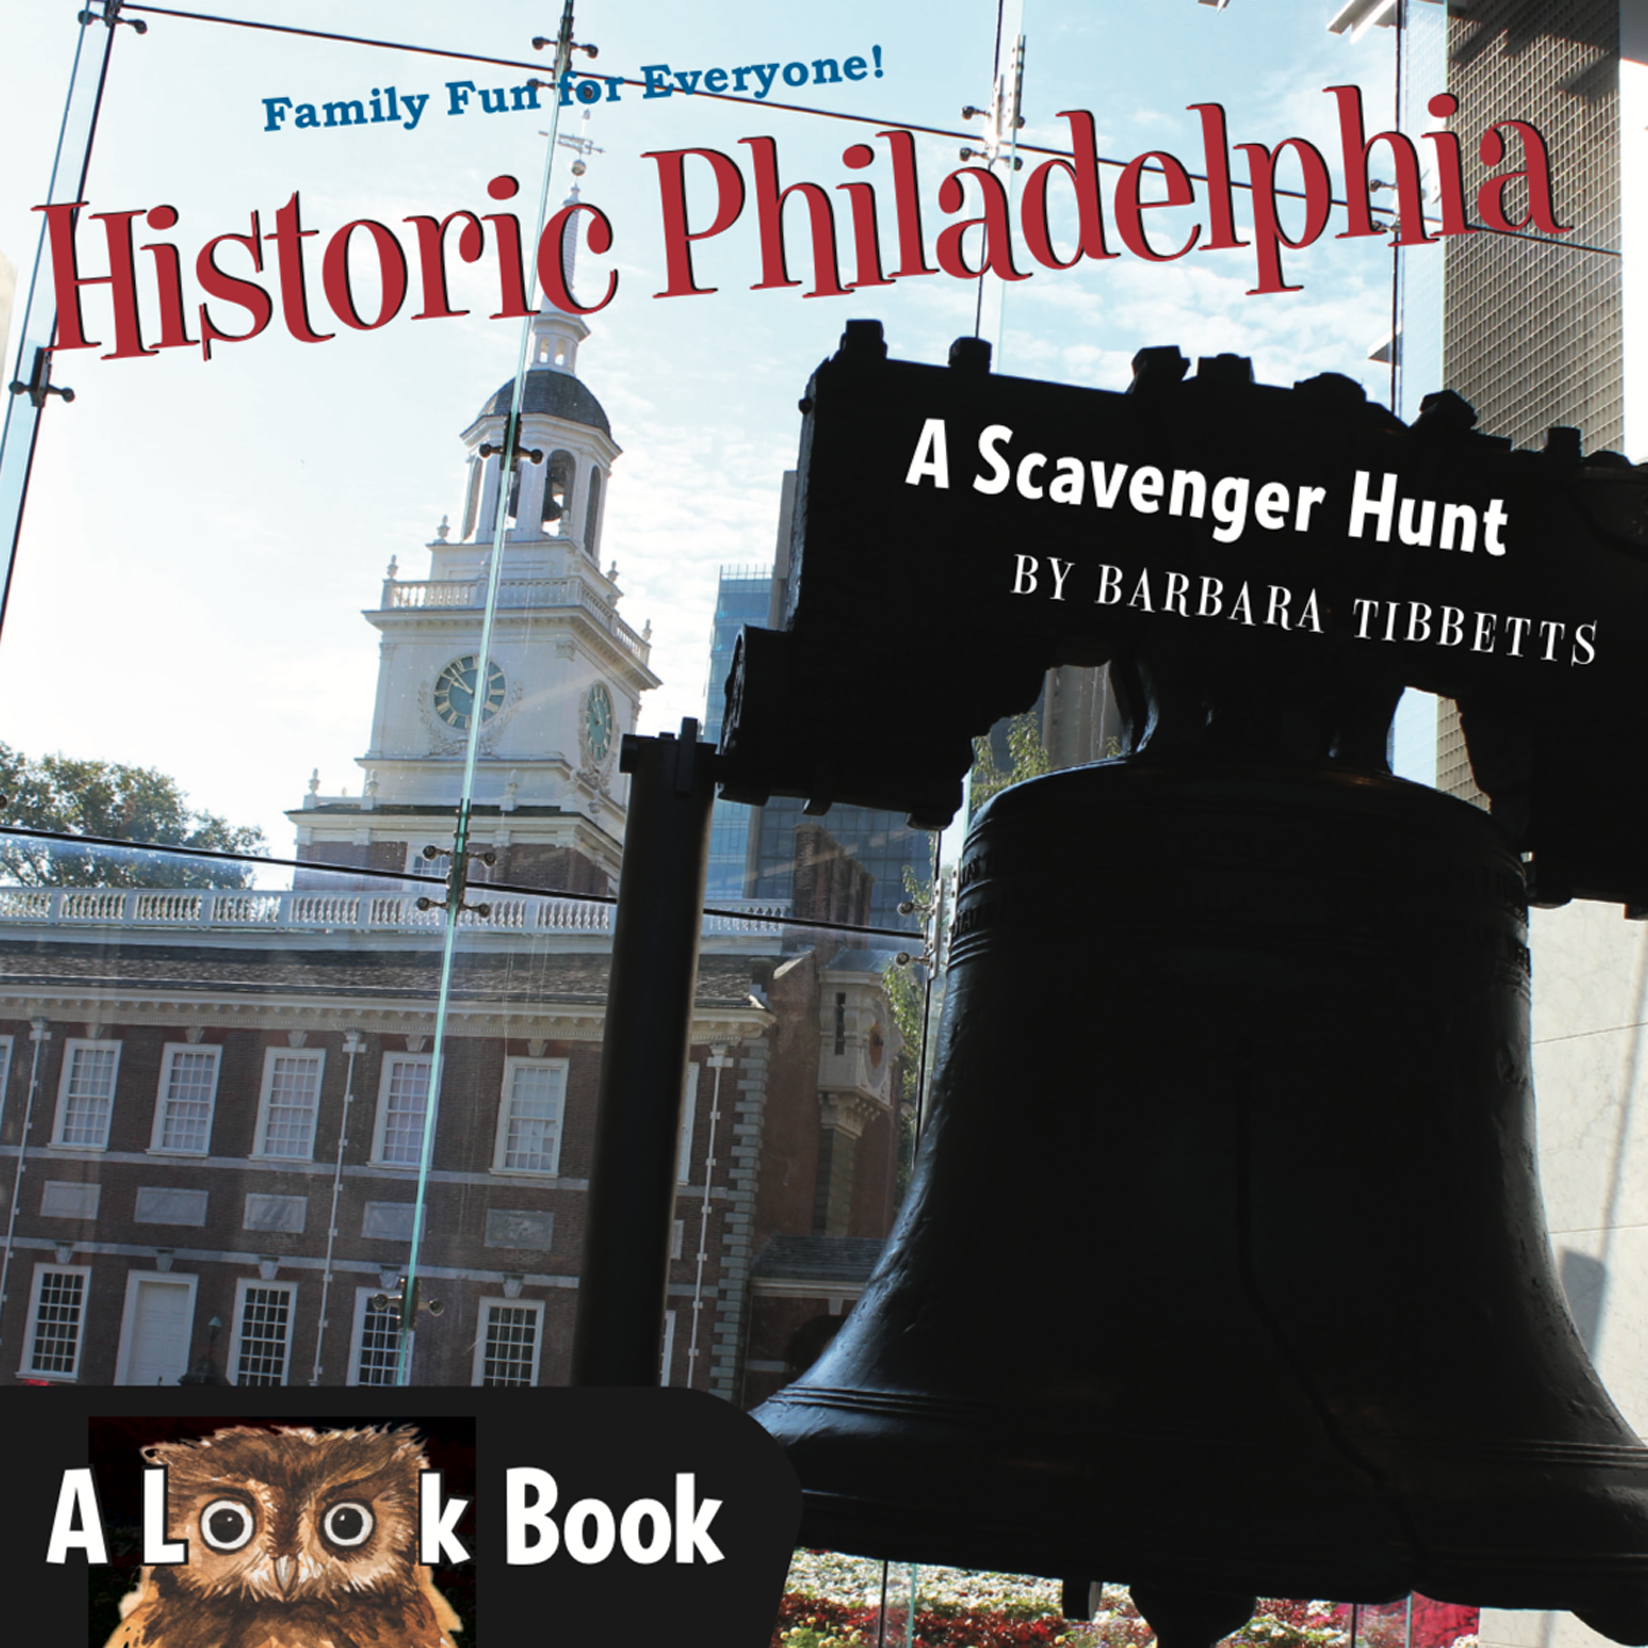 Philadelphia, PA – Look Book Scavenger Hunt